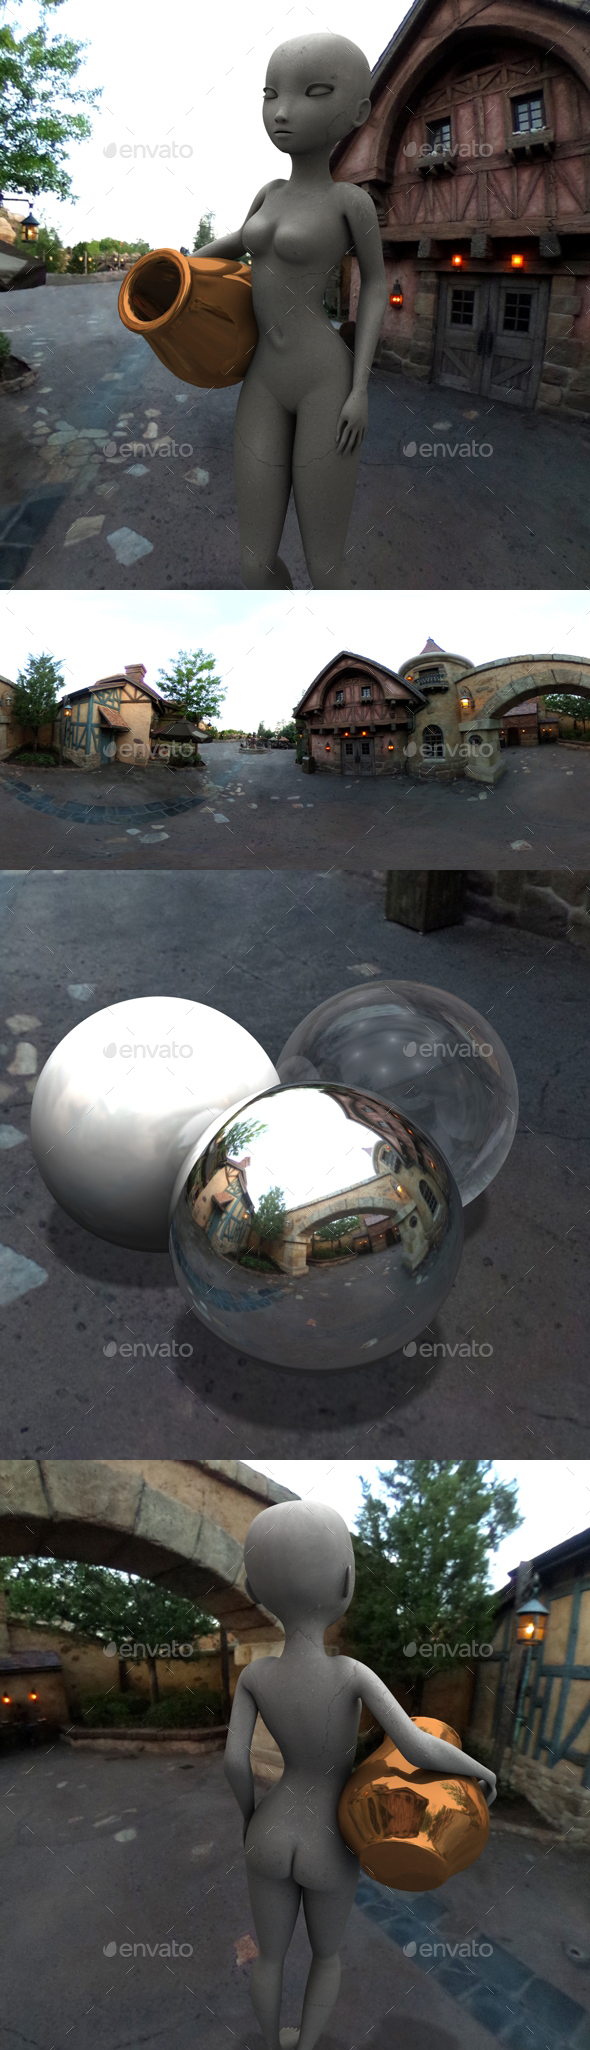 Fantasy Village Afternoon HDRI - 3DOcean Item for Sale